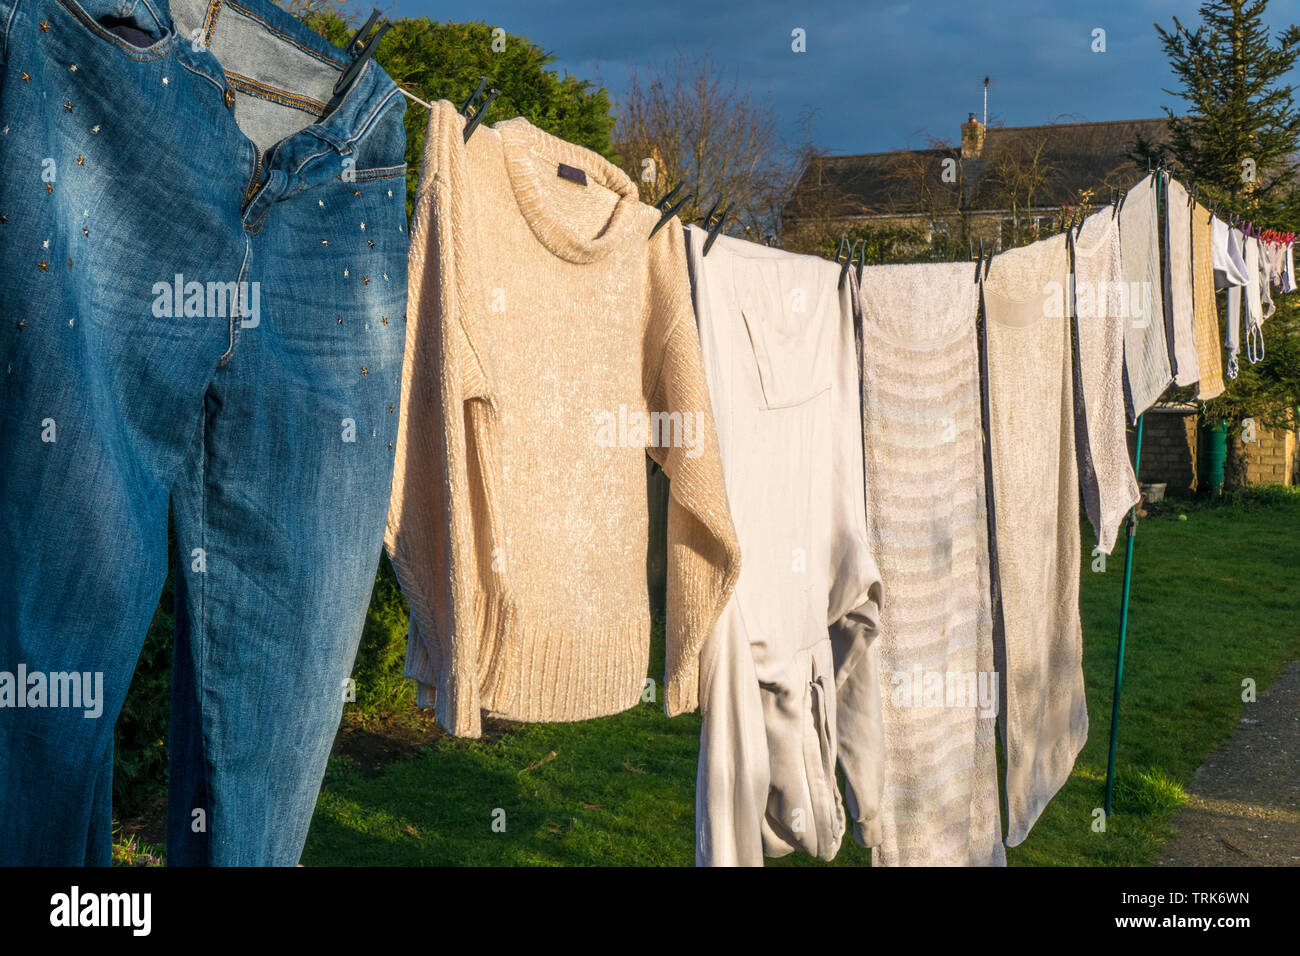 Side view of domestic laundry of wet clothes and towels, pegged and hanging out to dry on a washing line in the warm afternoon sunshine. England, UK. - Stock Image